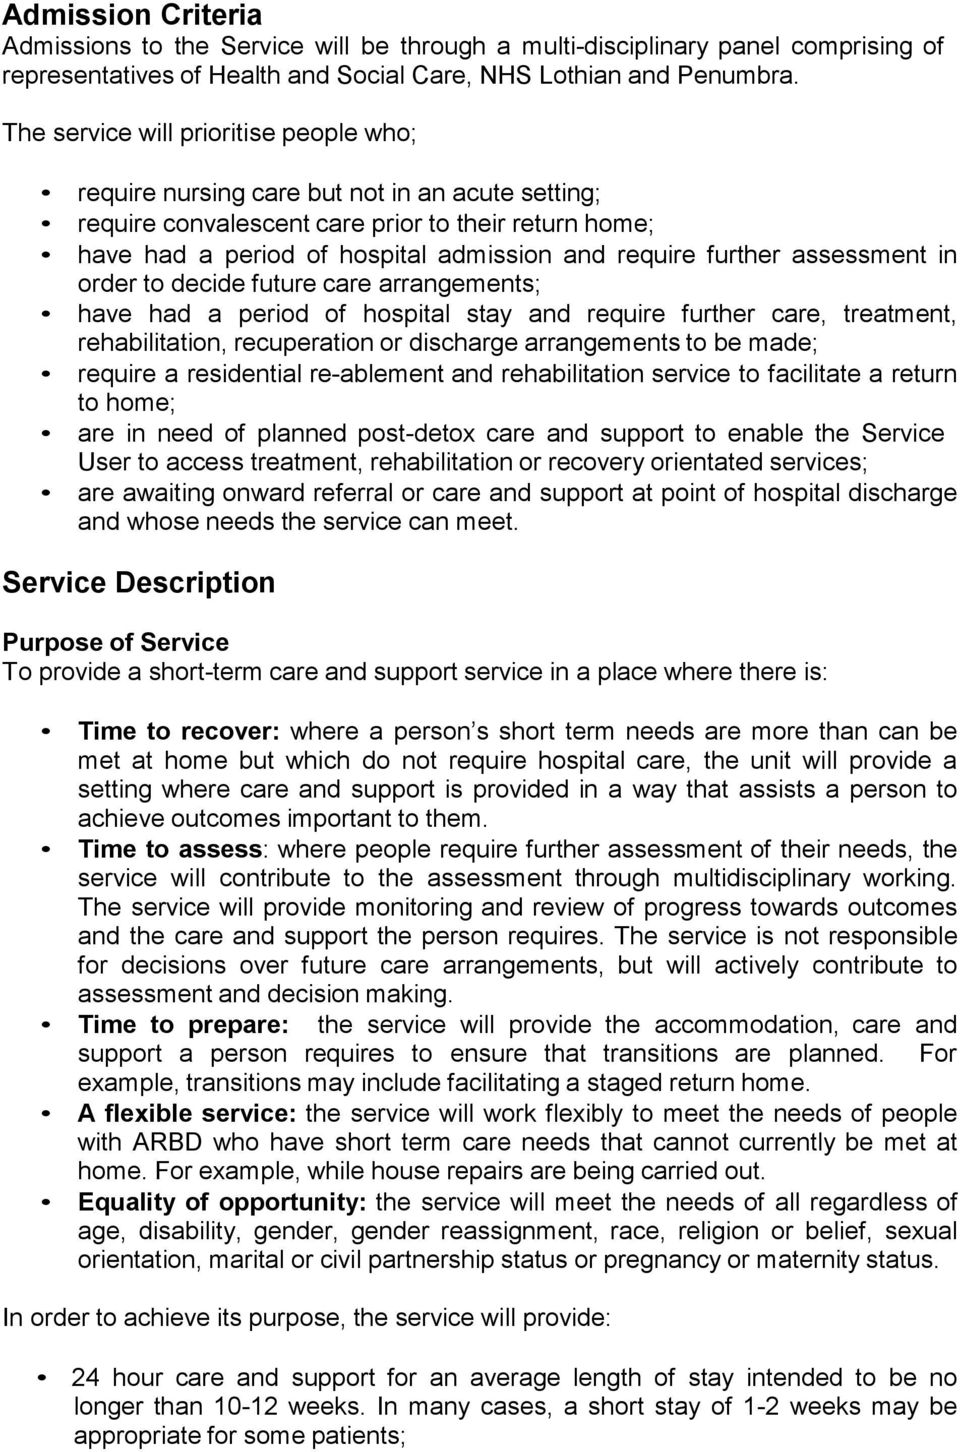 further assessment in order to decide future care arrangements; have had a period of hospital stay and require further care, treatment, rehabilitation, recuperation or discharge arrangements to be